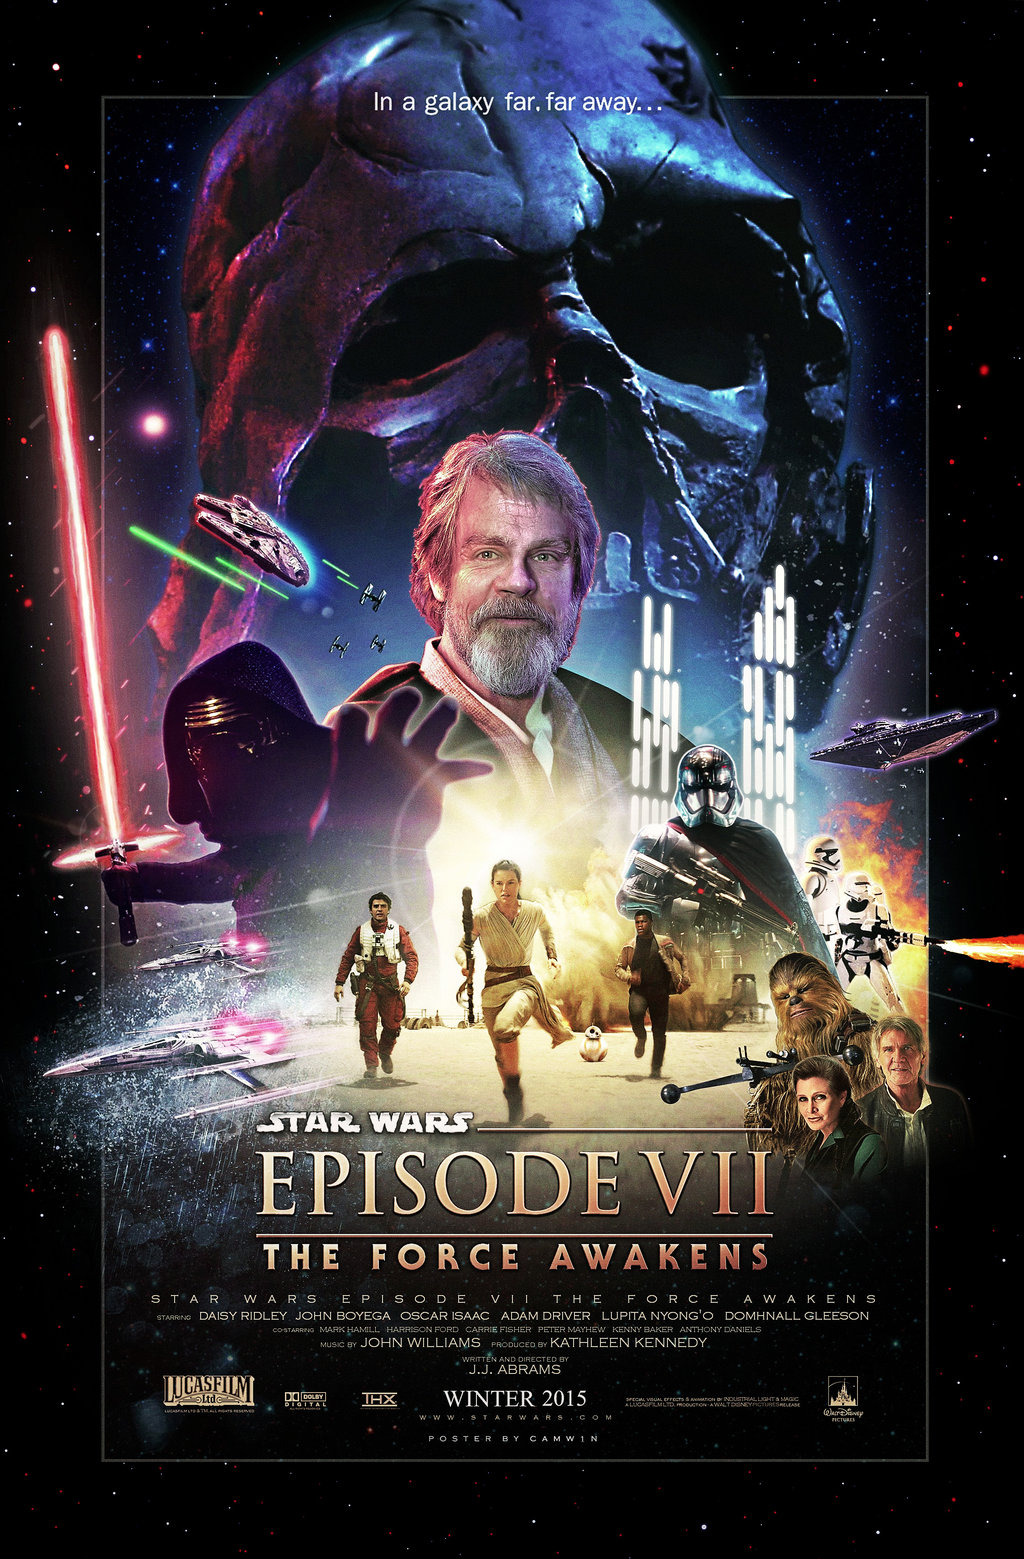 Star Wars Episode 7 Inhalt